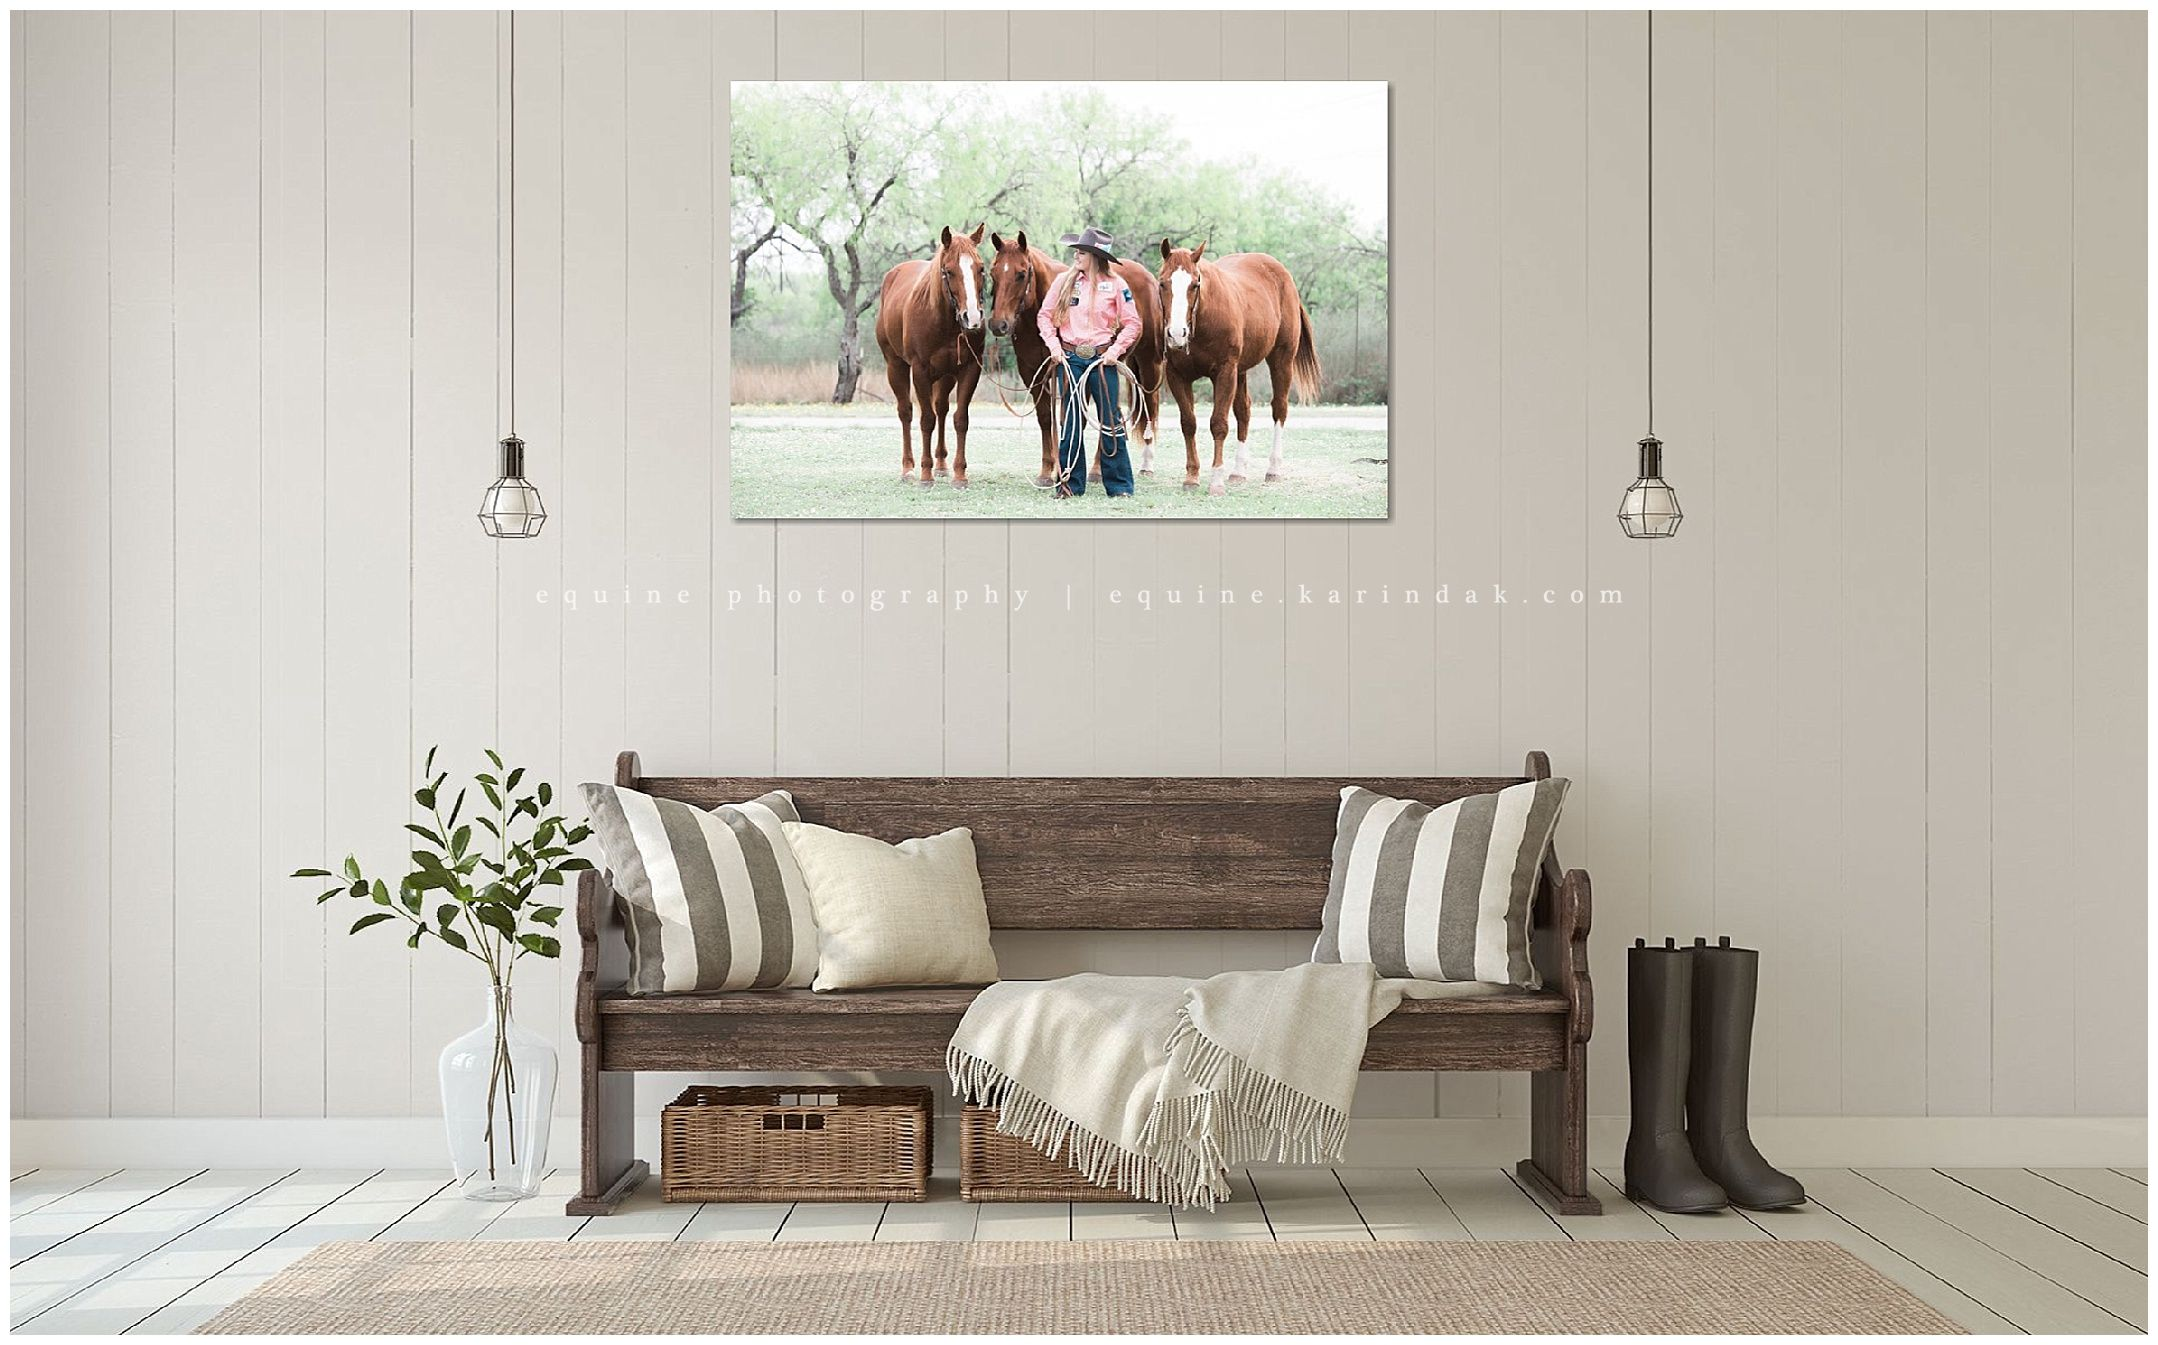 Displaying Your Portraits in Your Home | Accent pieces, Display and ...